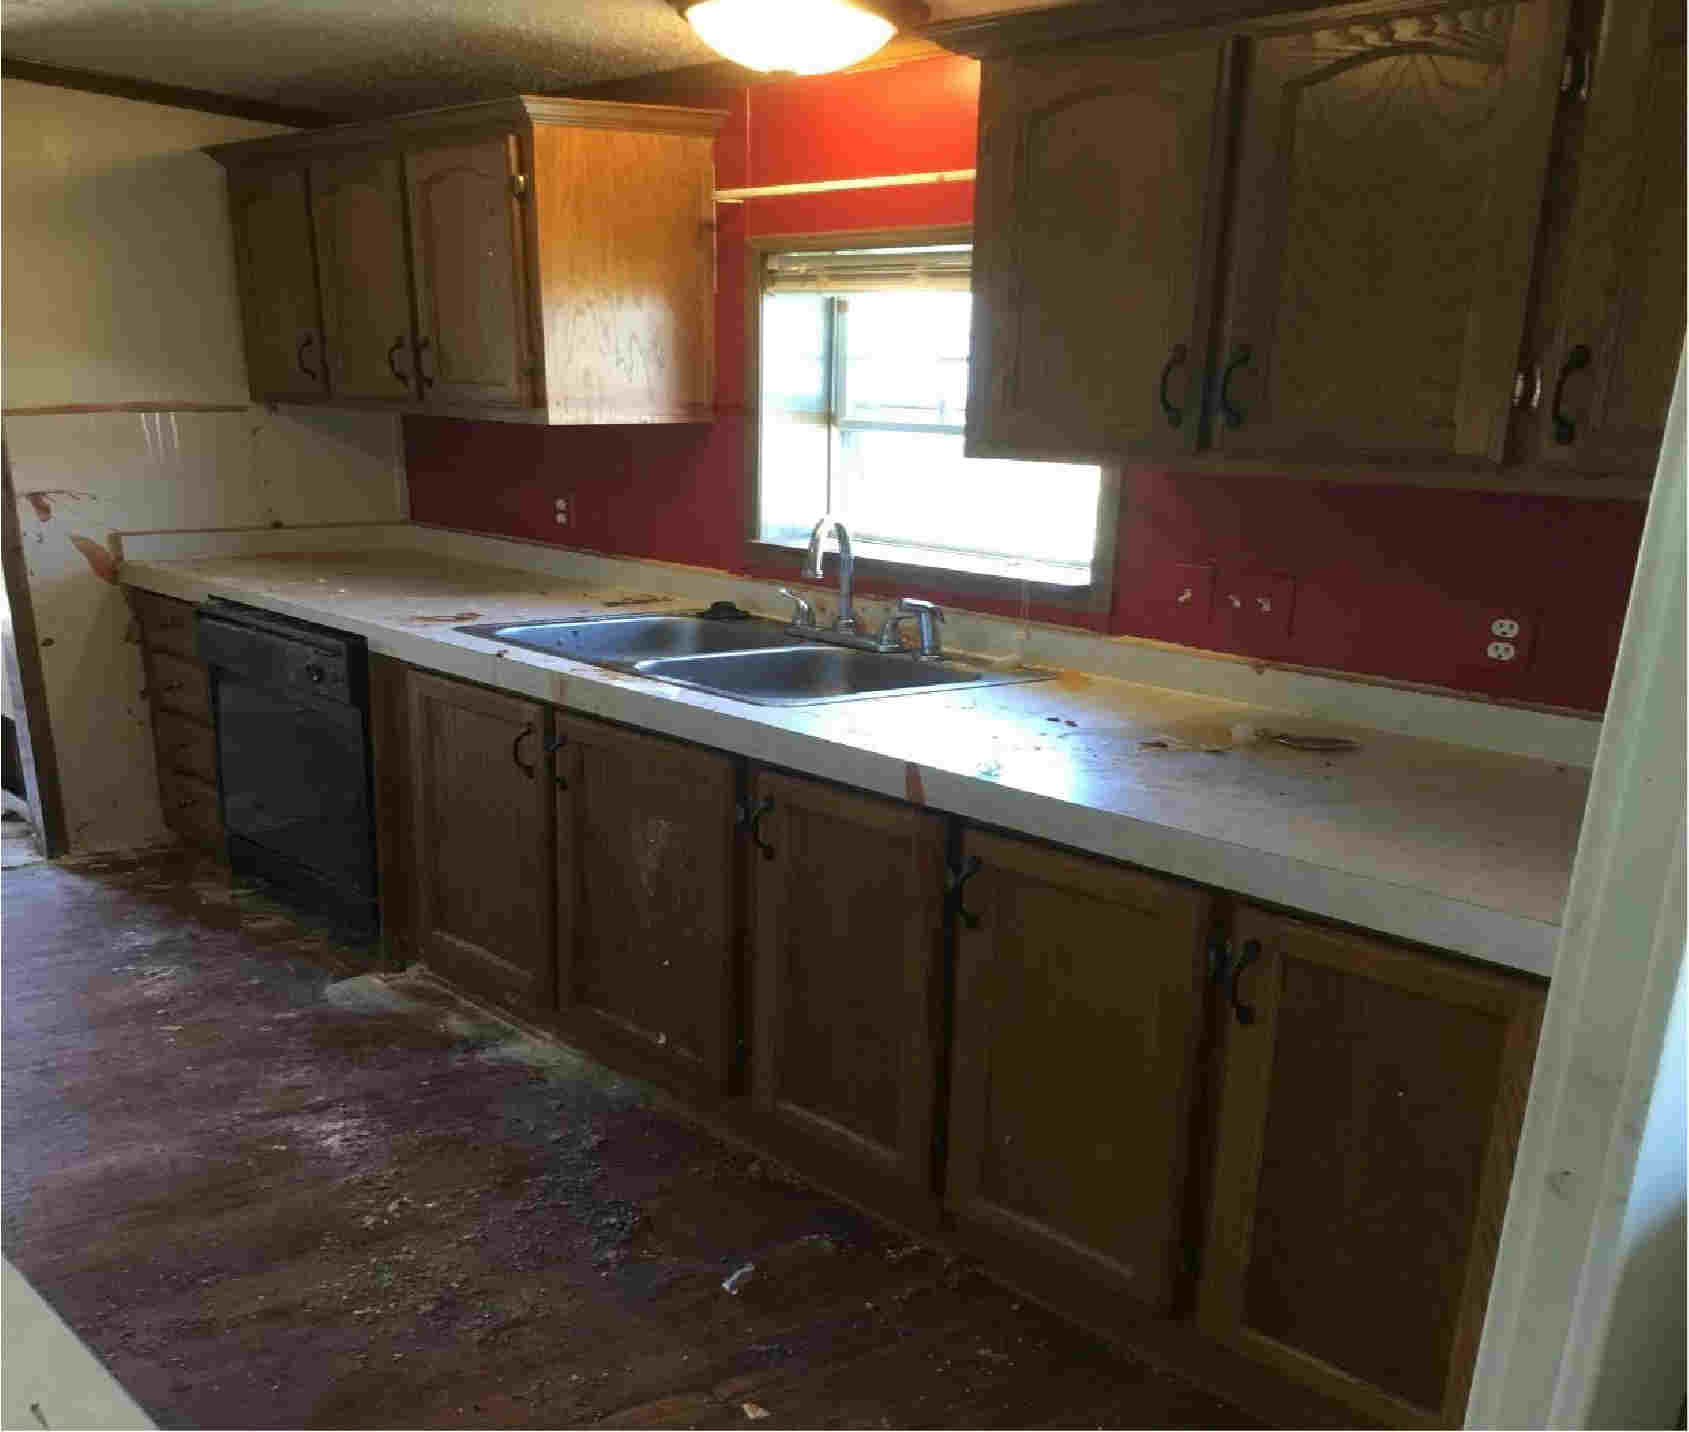 mobile home kitchen before refurbishment and repair